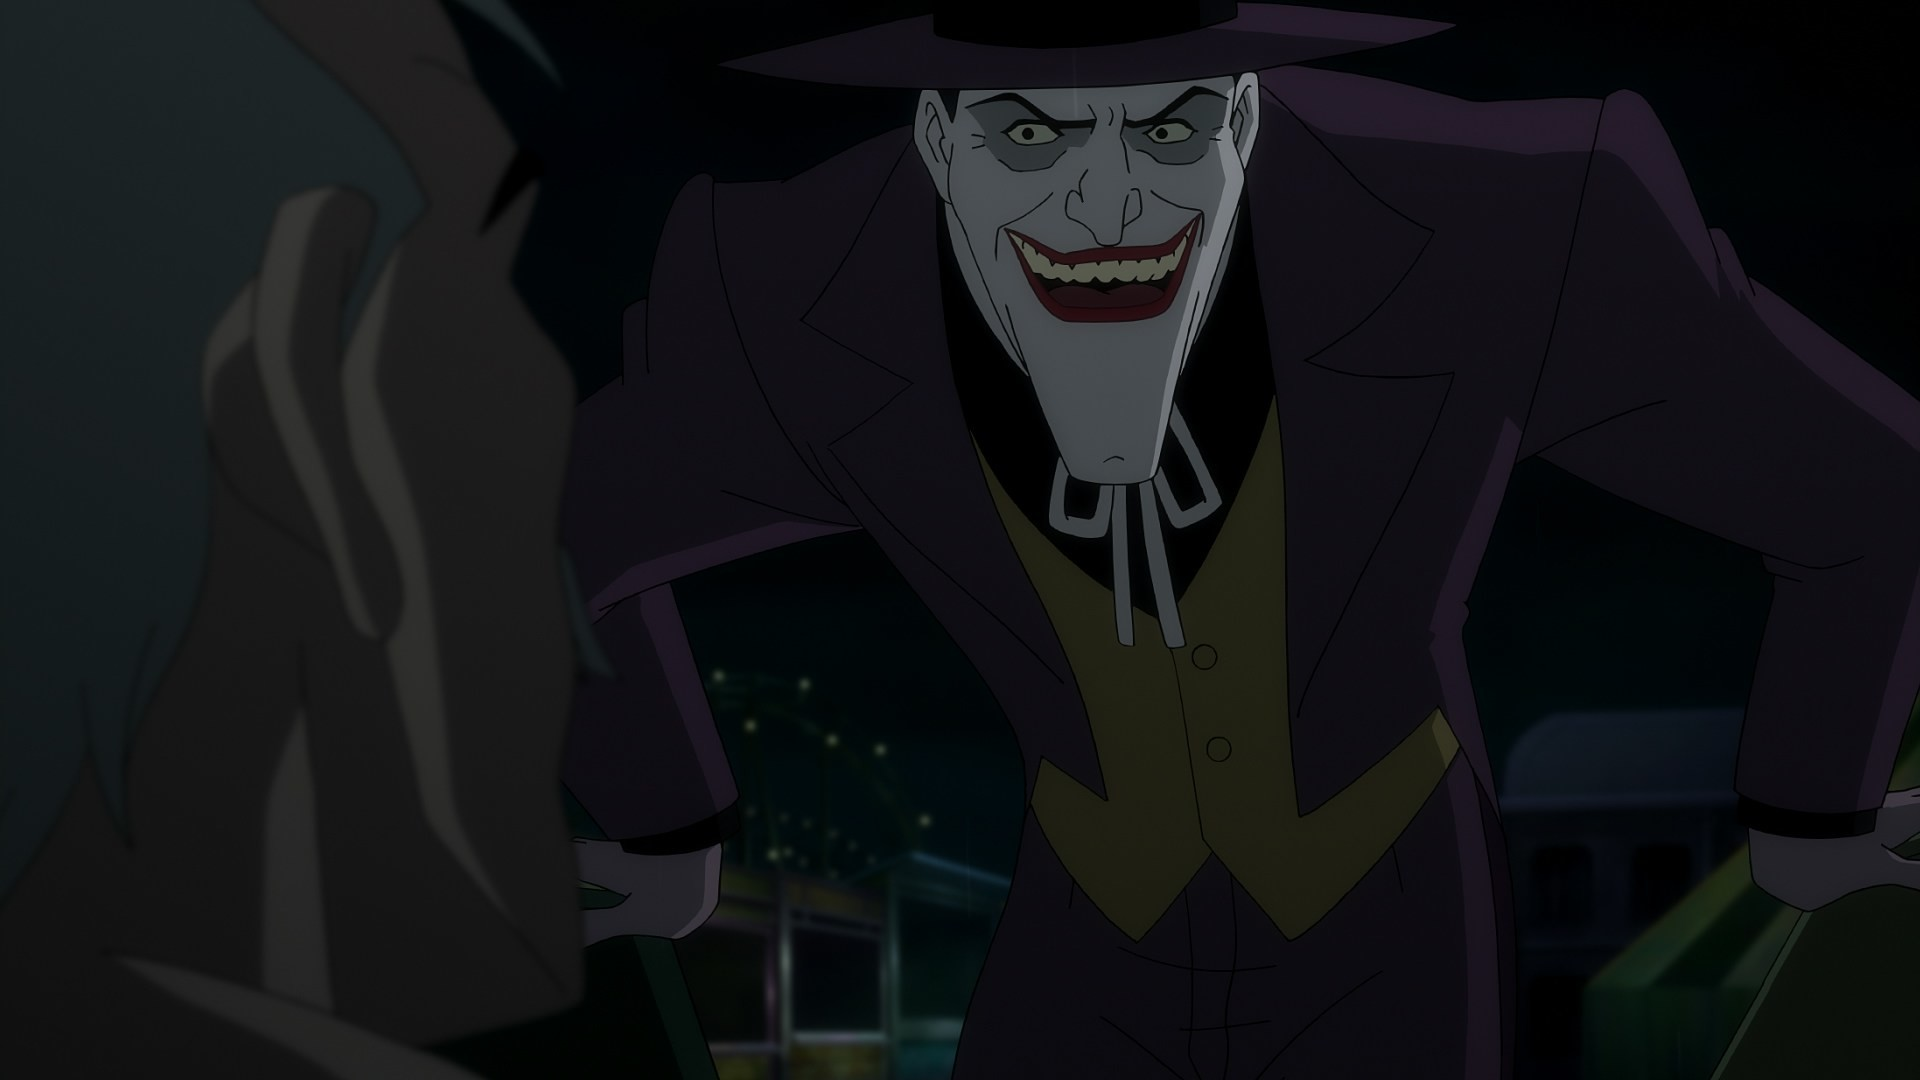 """The dark journey into insanity begins as """"Batman: The Killing Joke"""" gets  the big-screen treatment for one night on Monday, July 25, 2016 at 7:30  p.m. and …"""